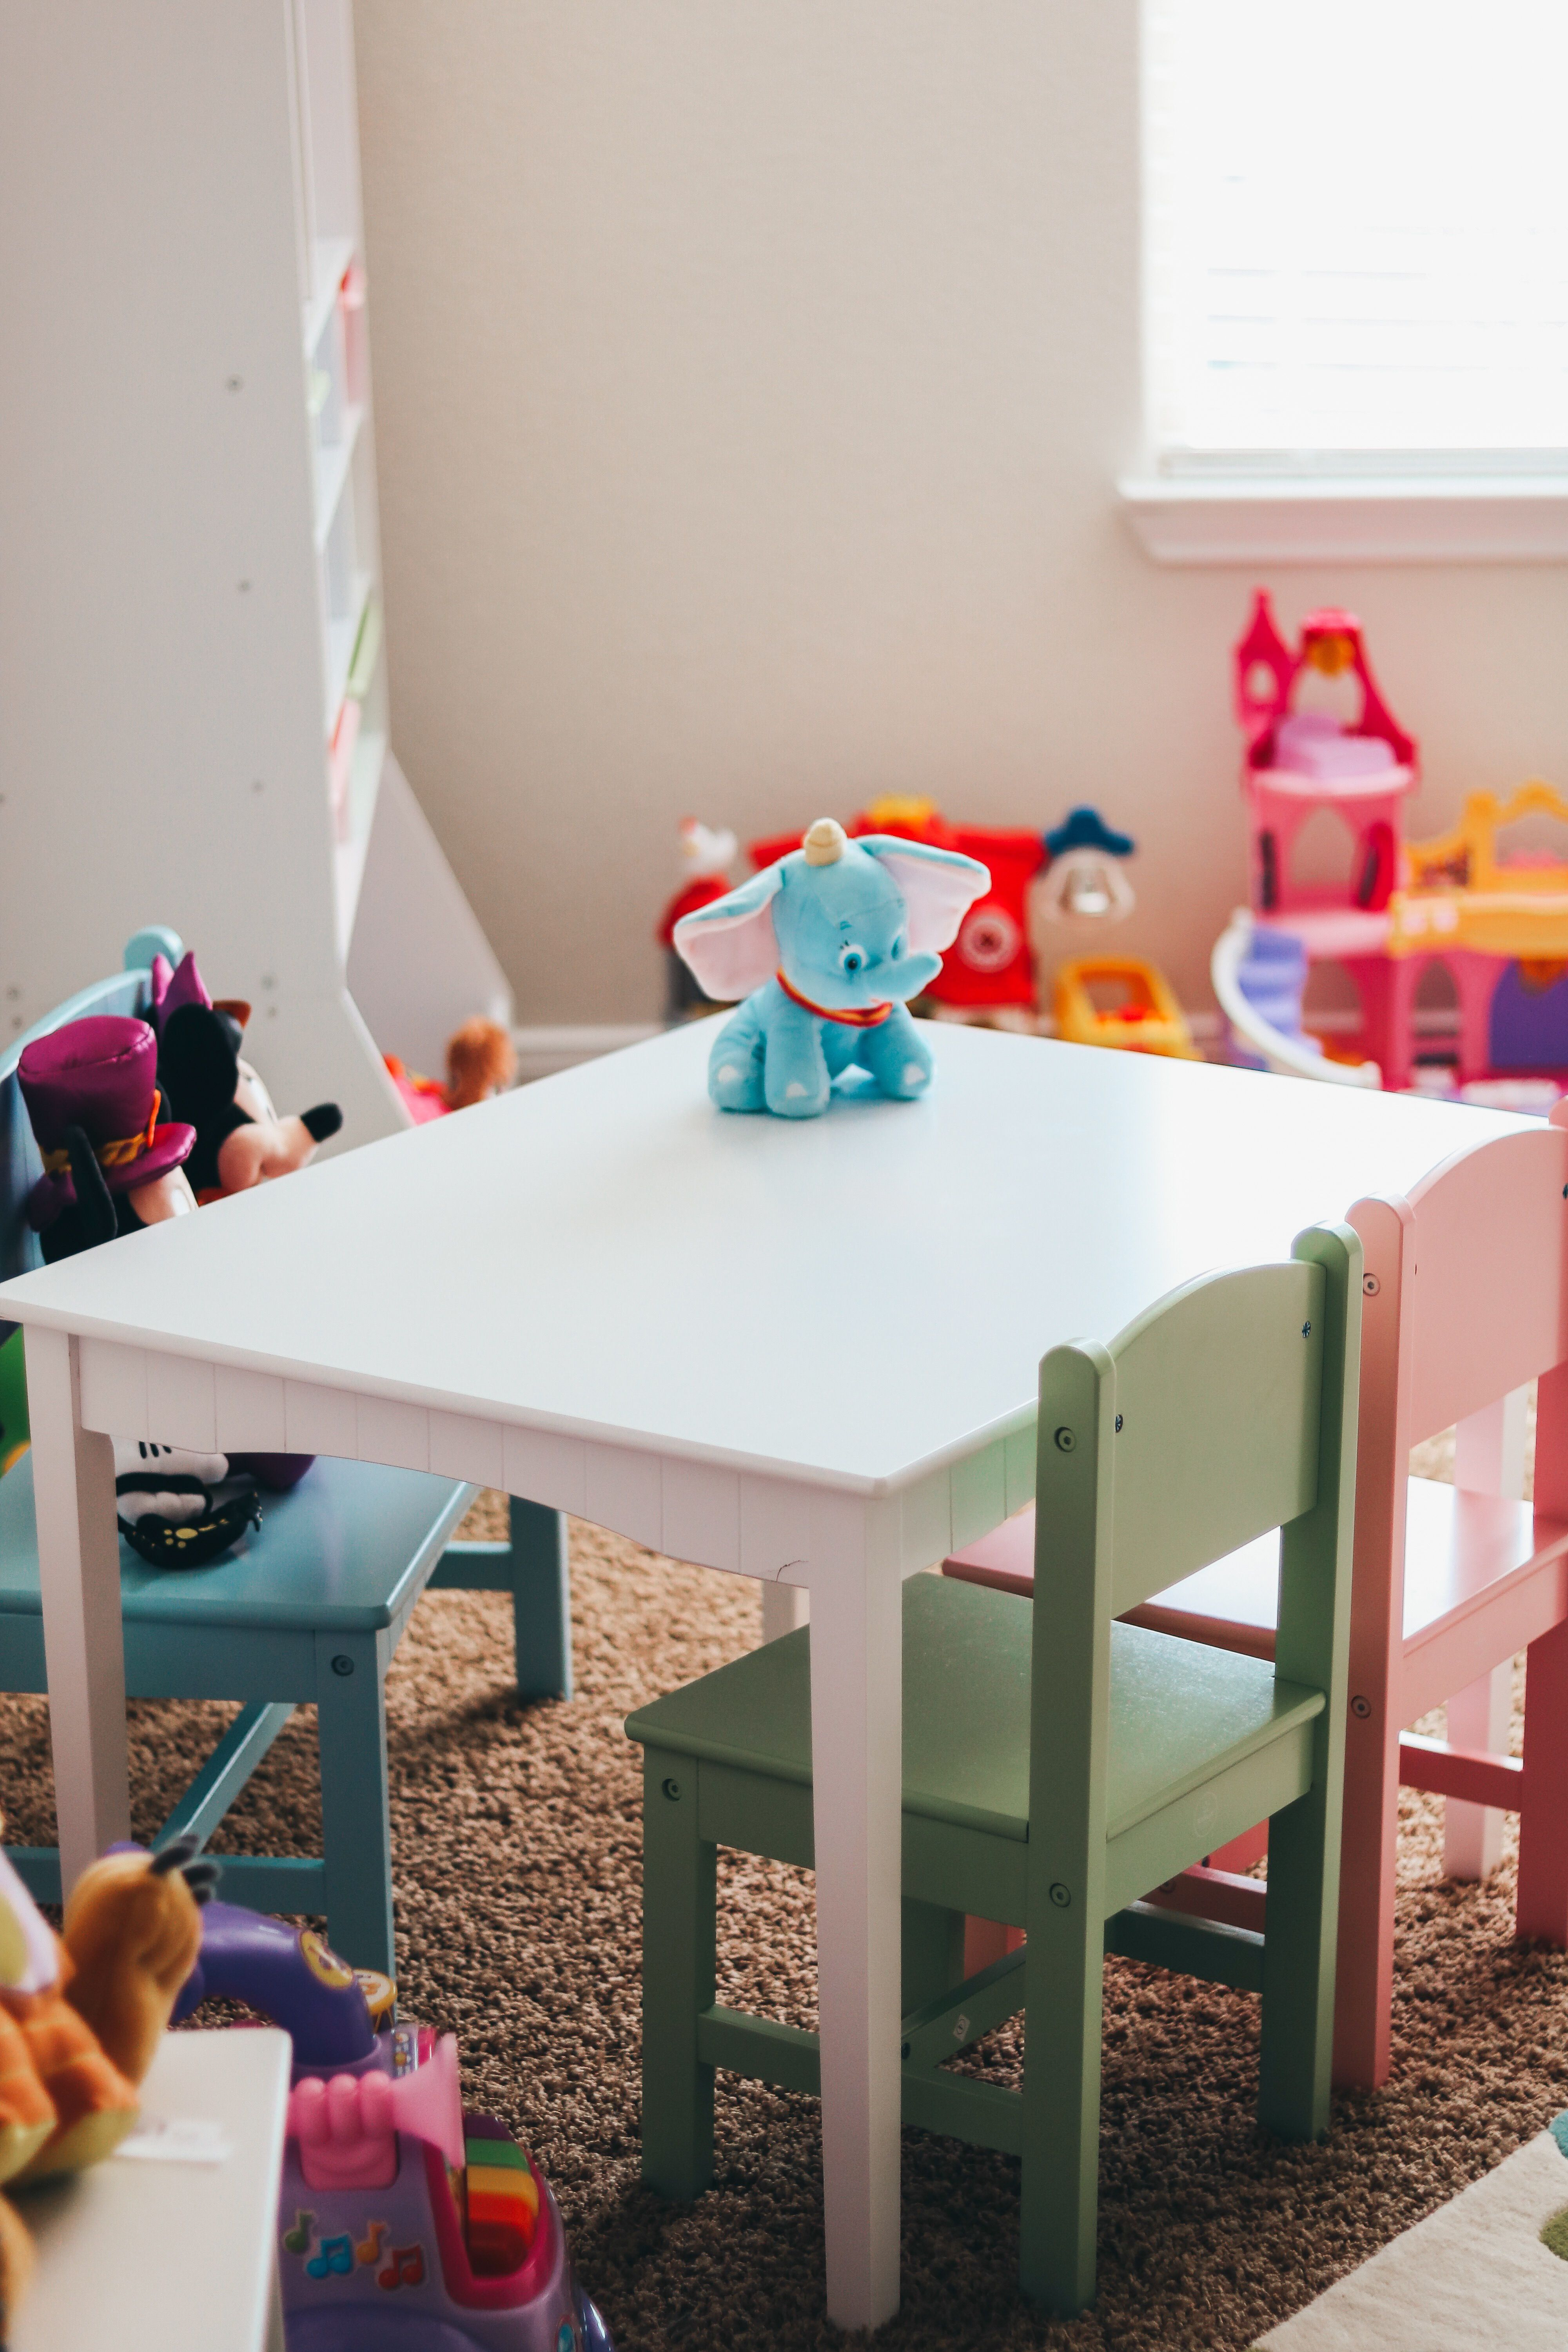 Pin By Amy Townley On Our Vintage Disney Playroom   Playroom